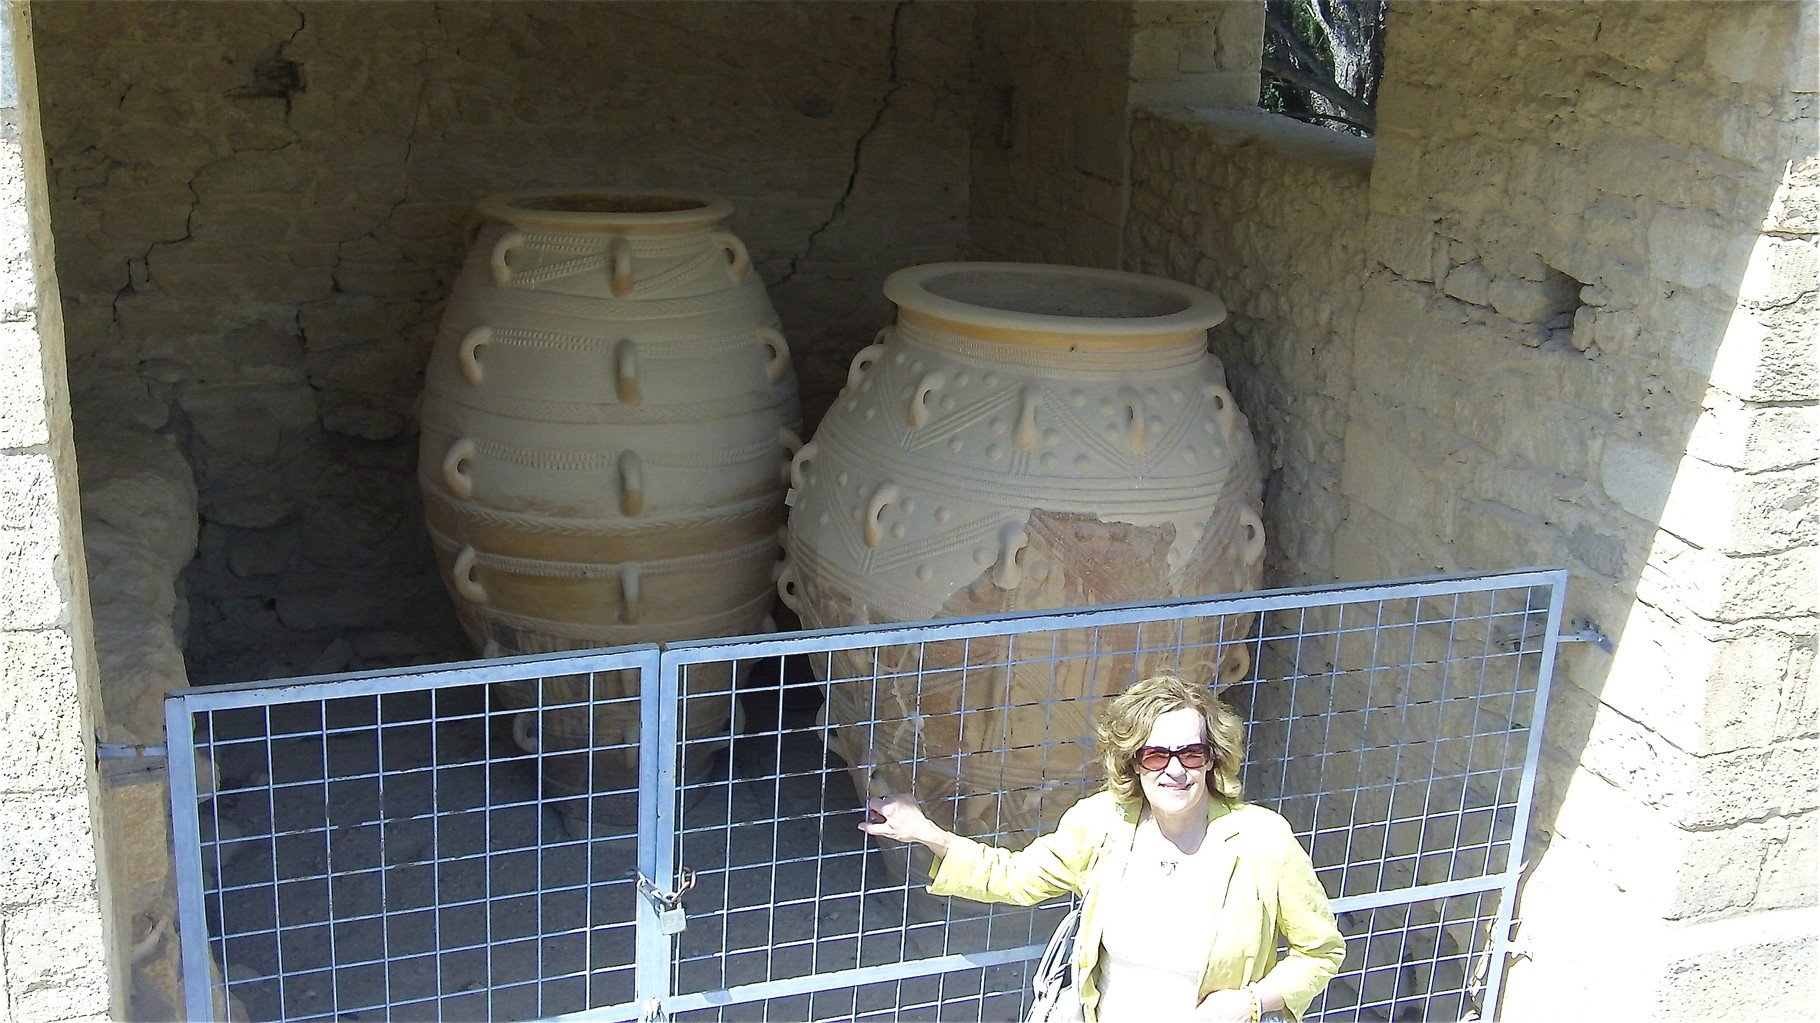 Lorraine with Minoan storage vessels, Knossos Palace